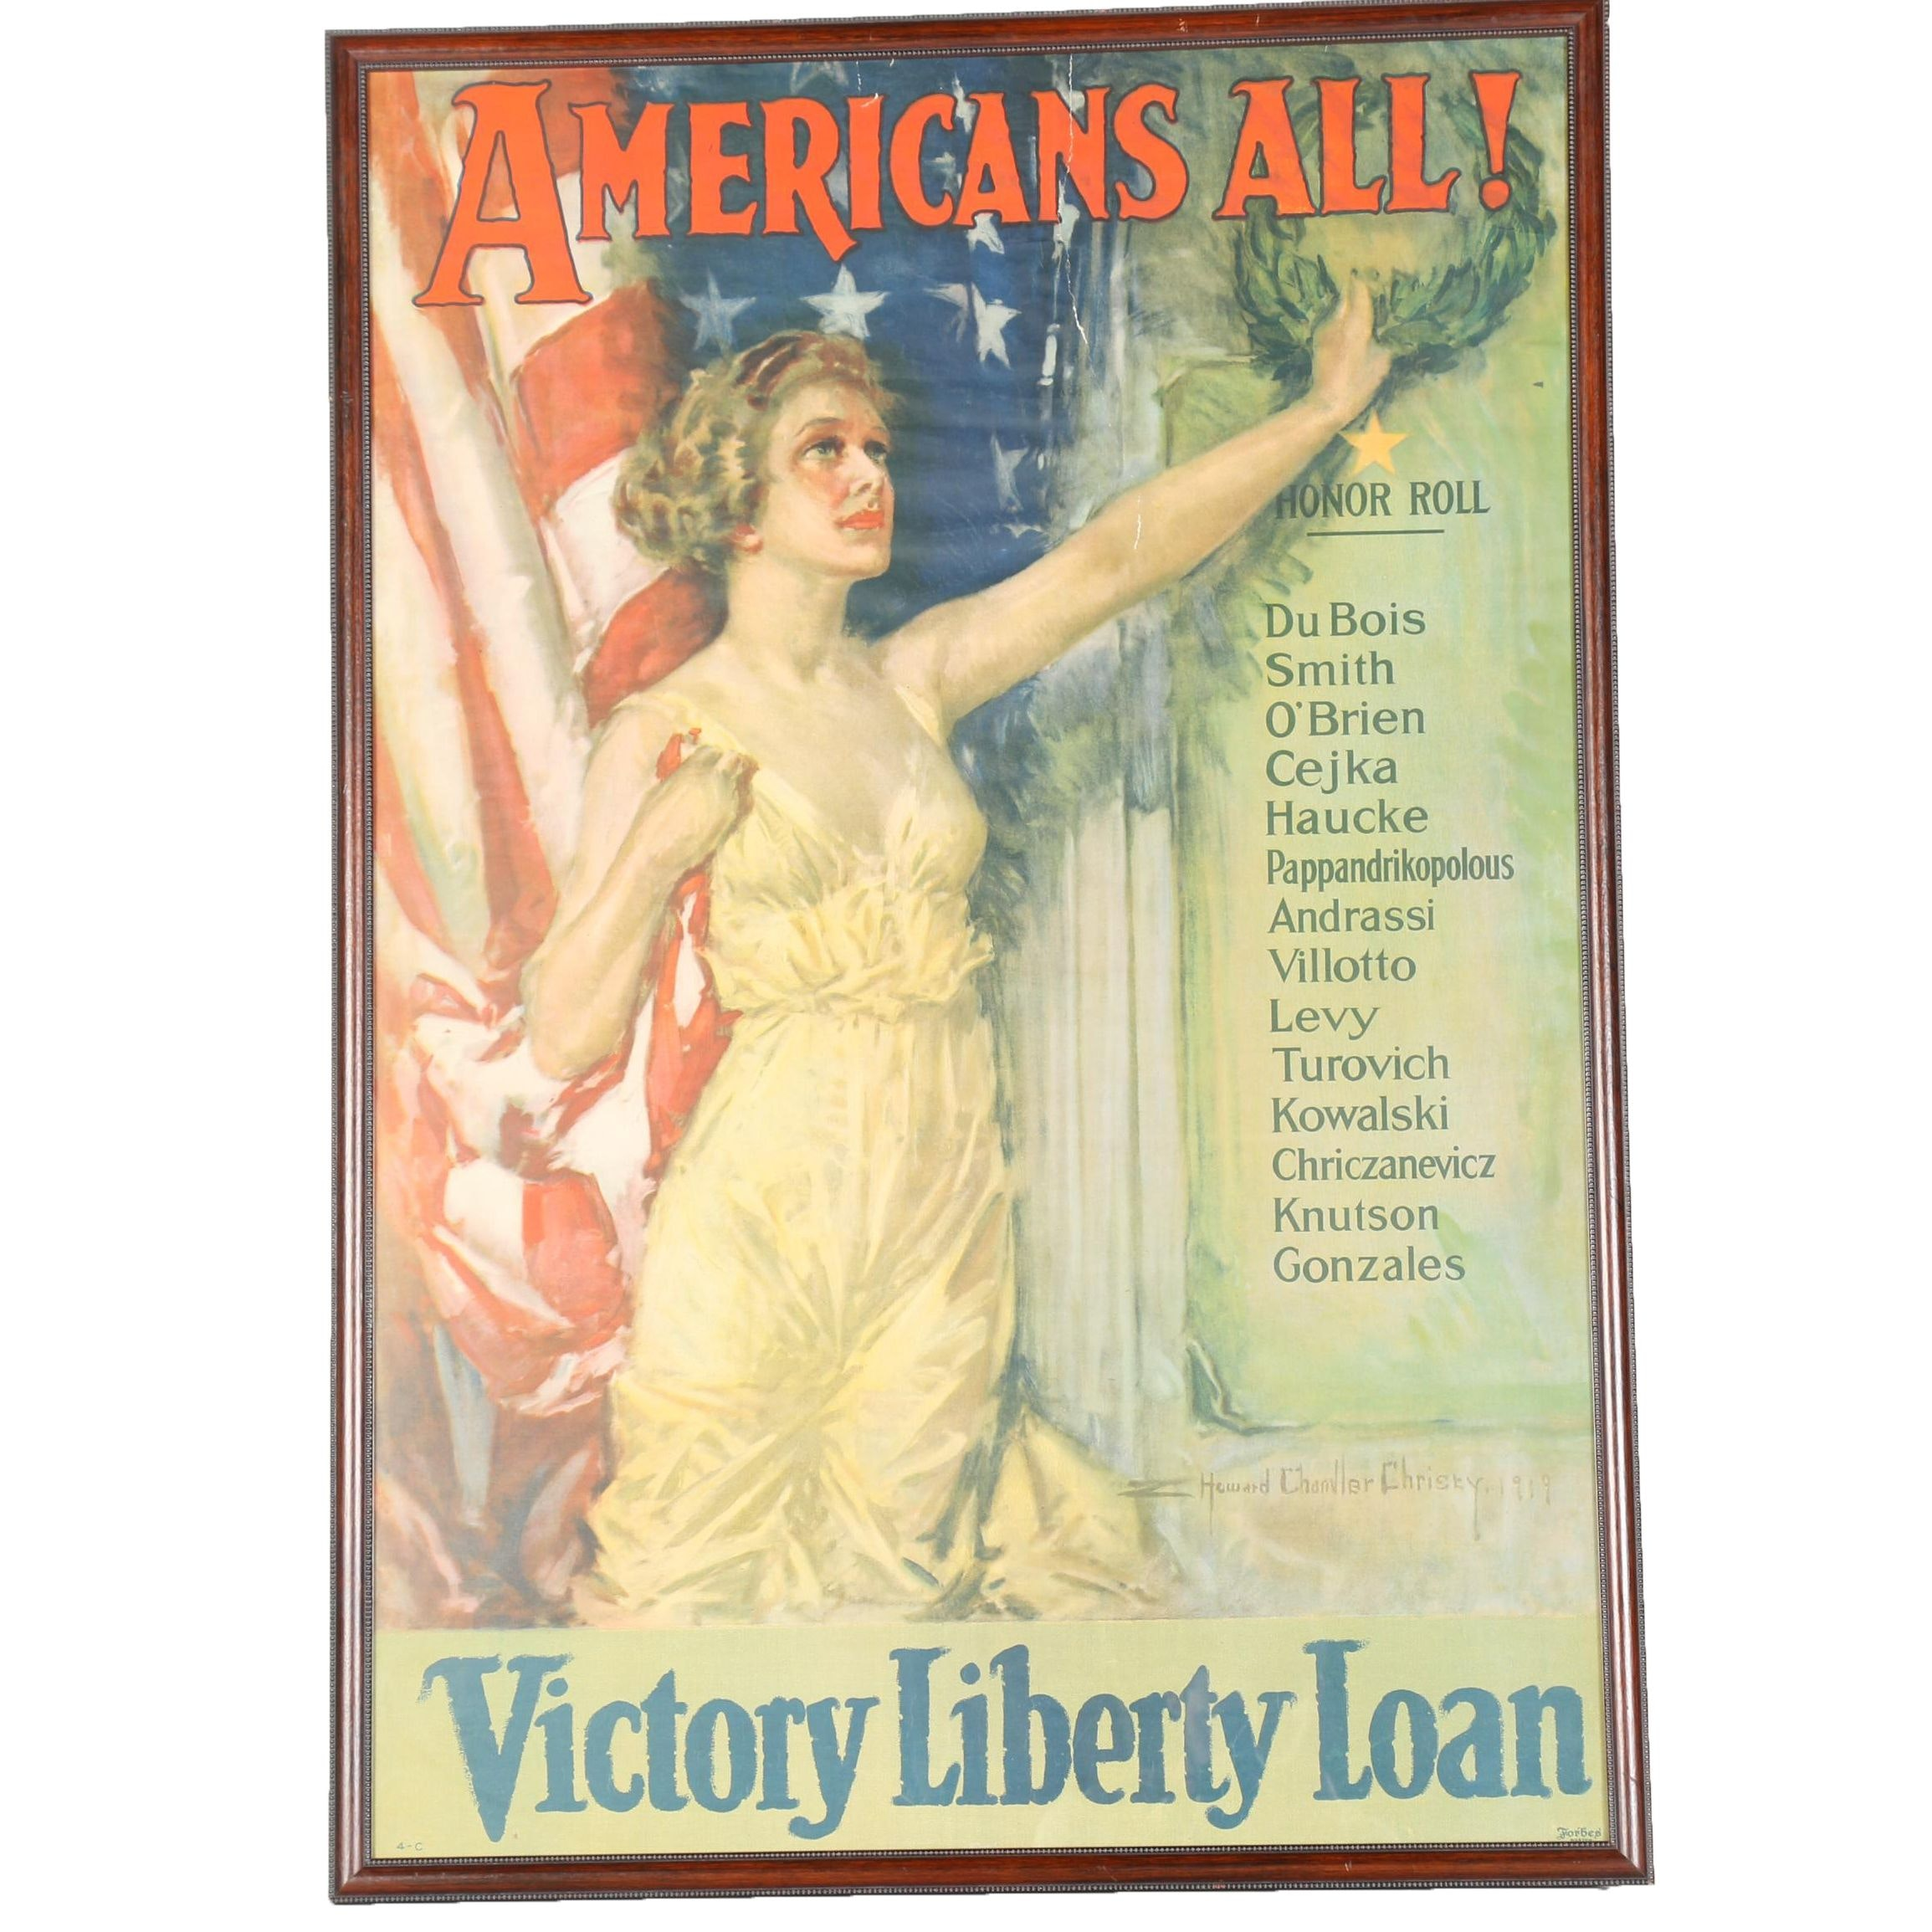 Vintage Victory Liberty Loan Poster